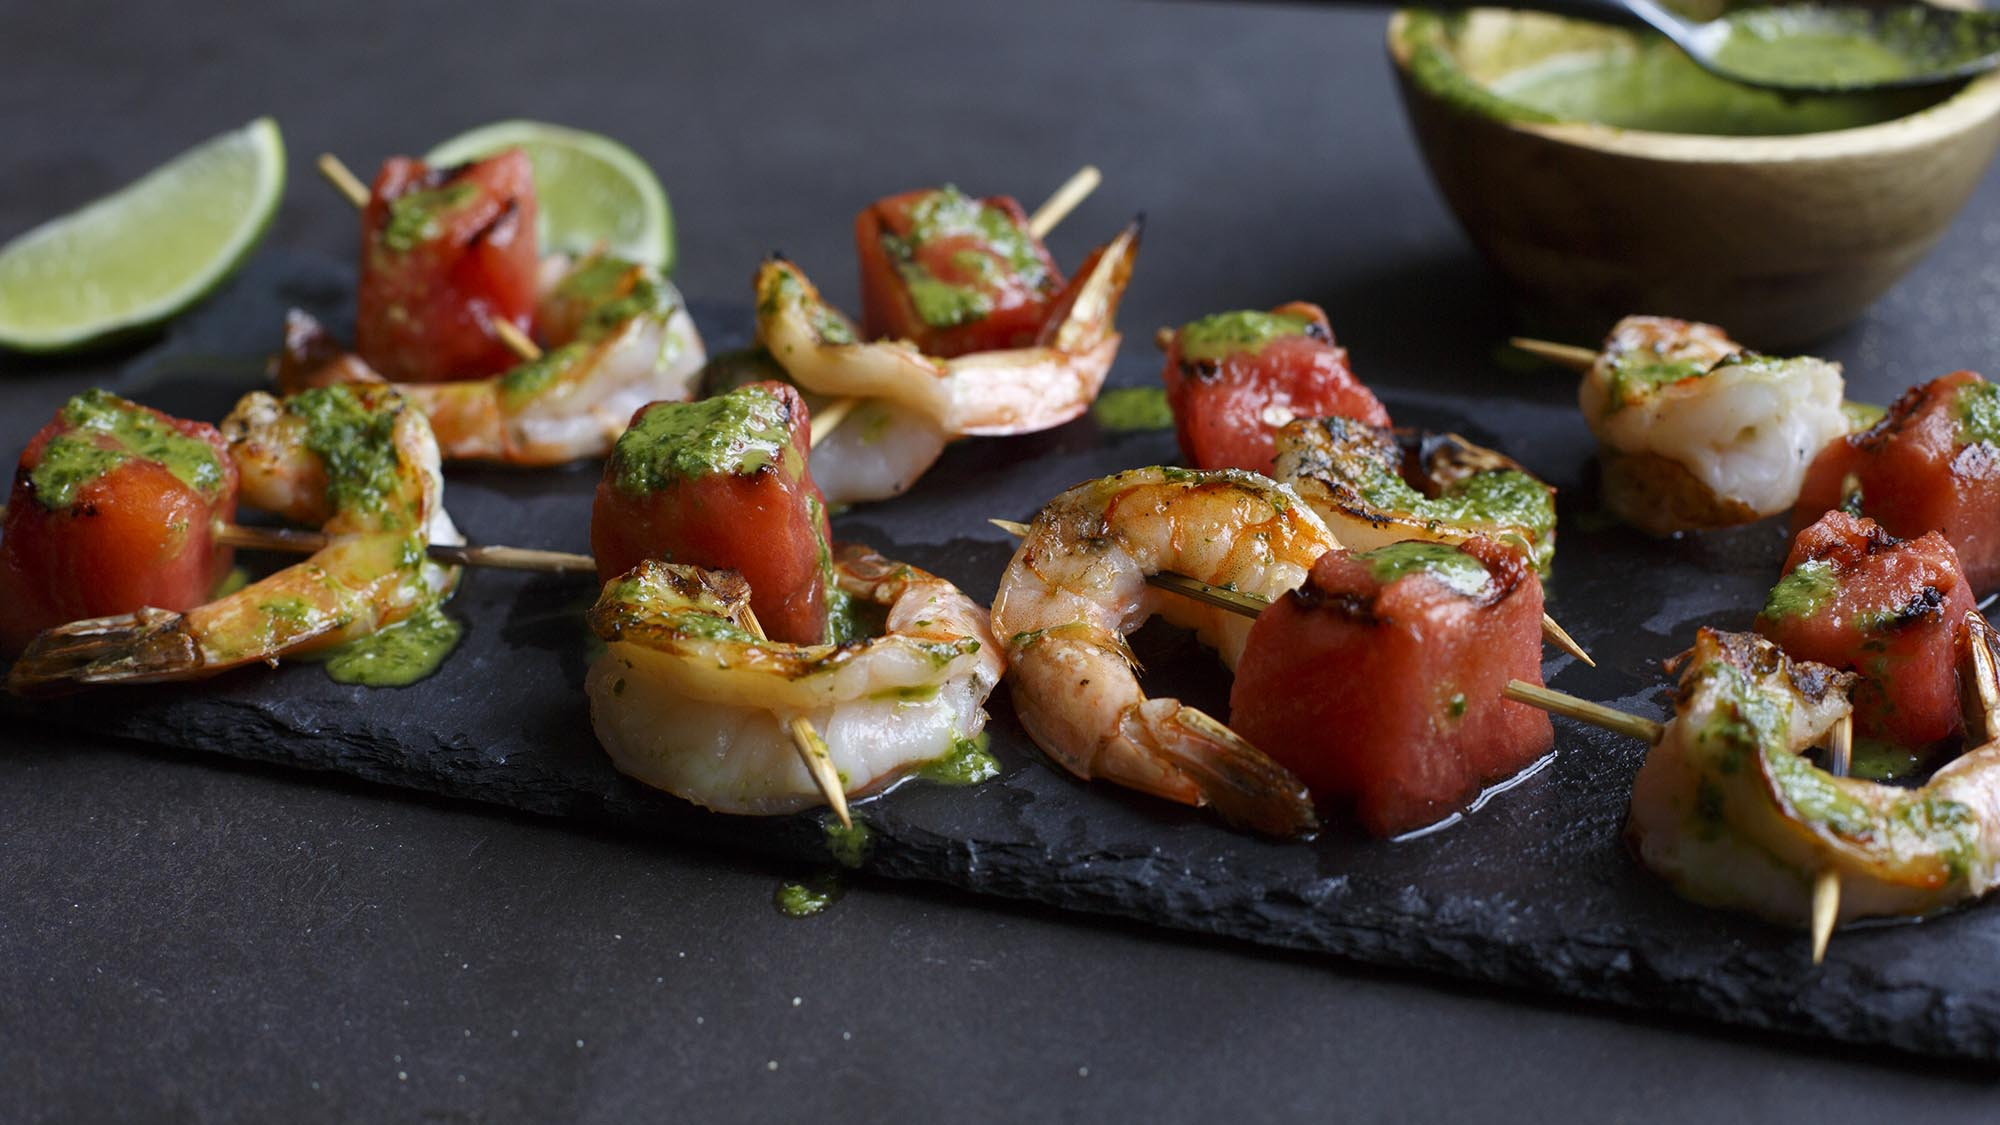 McCormick Grilled Watermelon and Shrimp Skewers